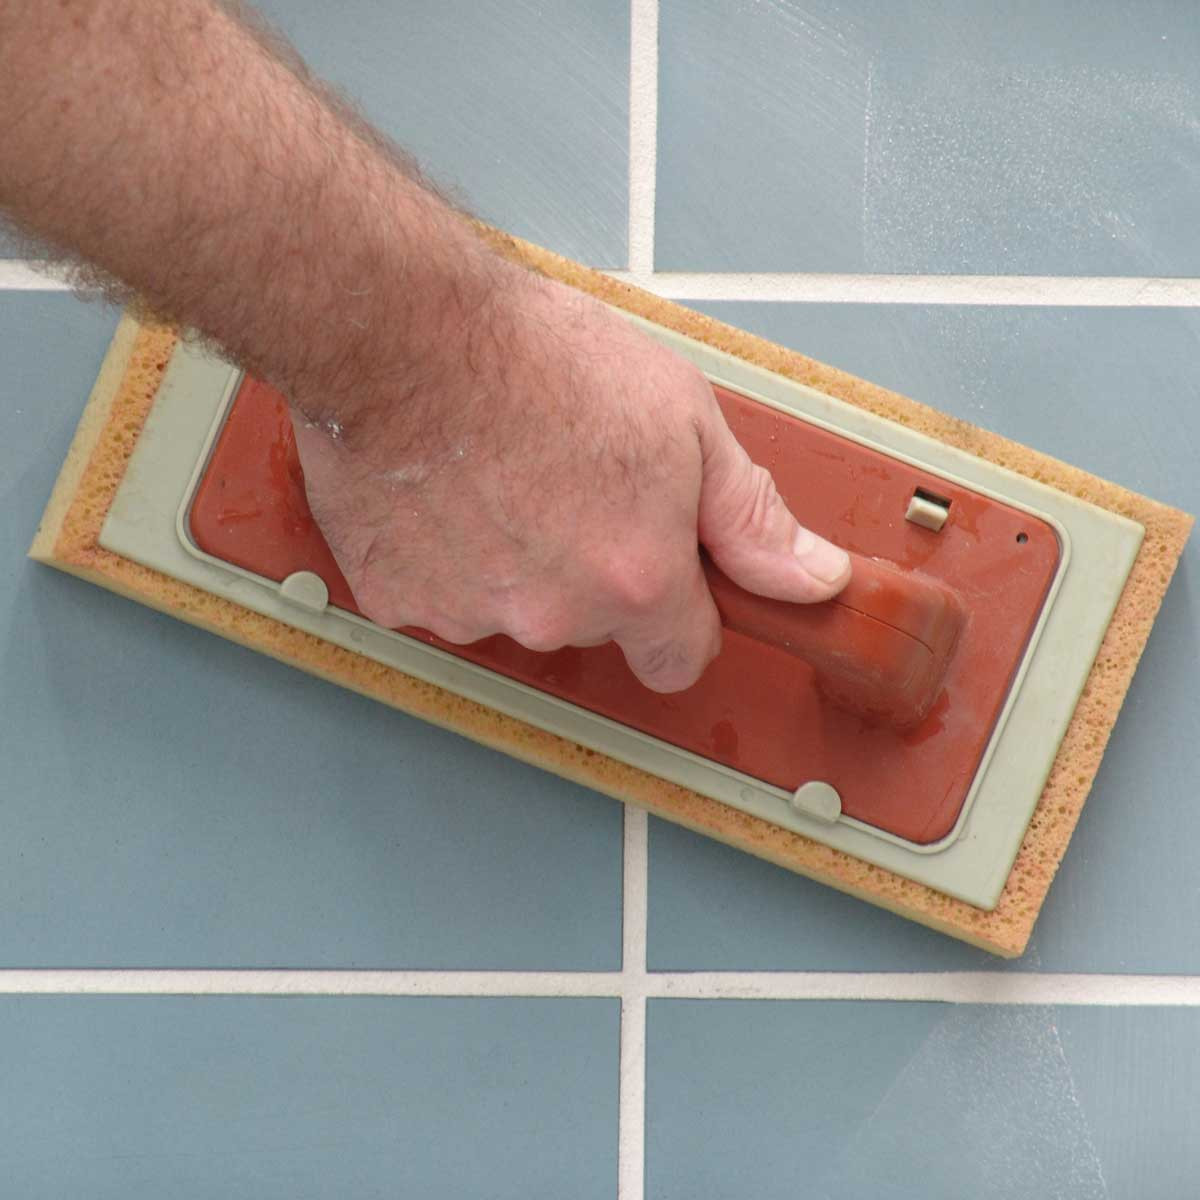 Repl Sponges Raimondi wall tile